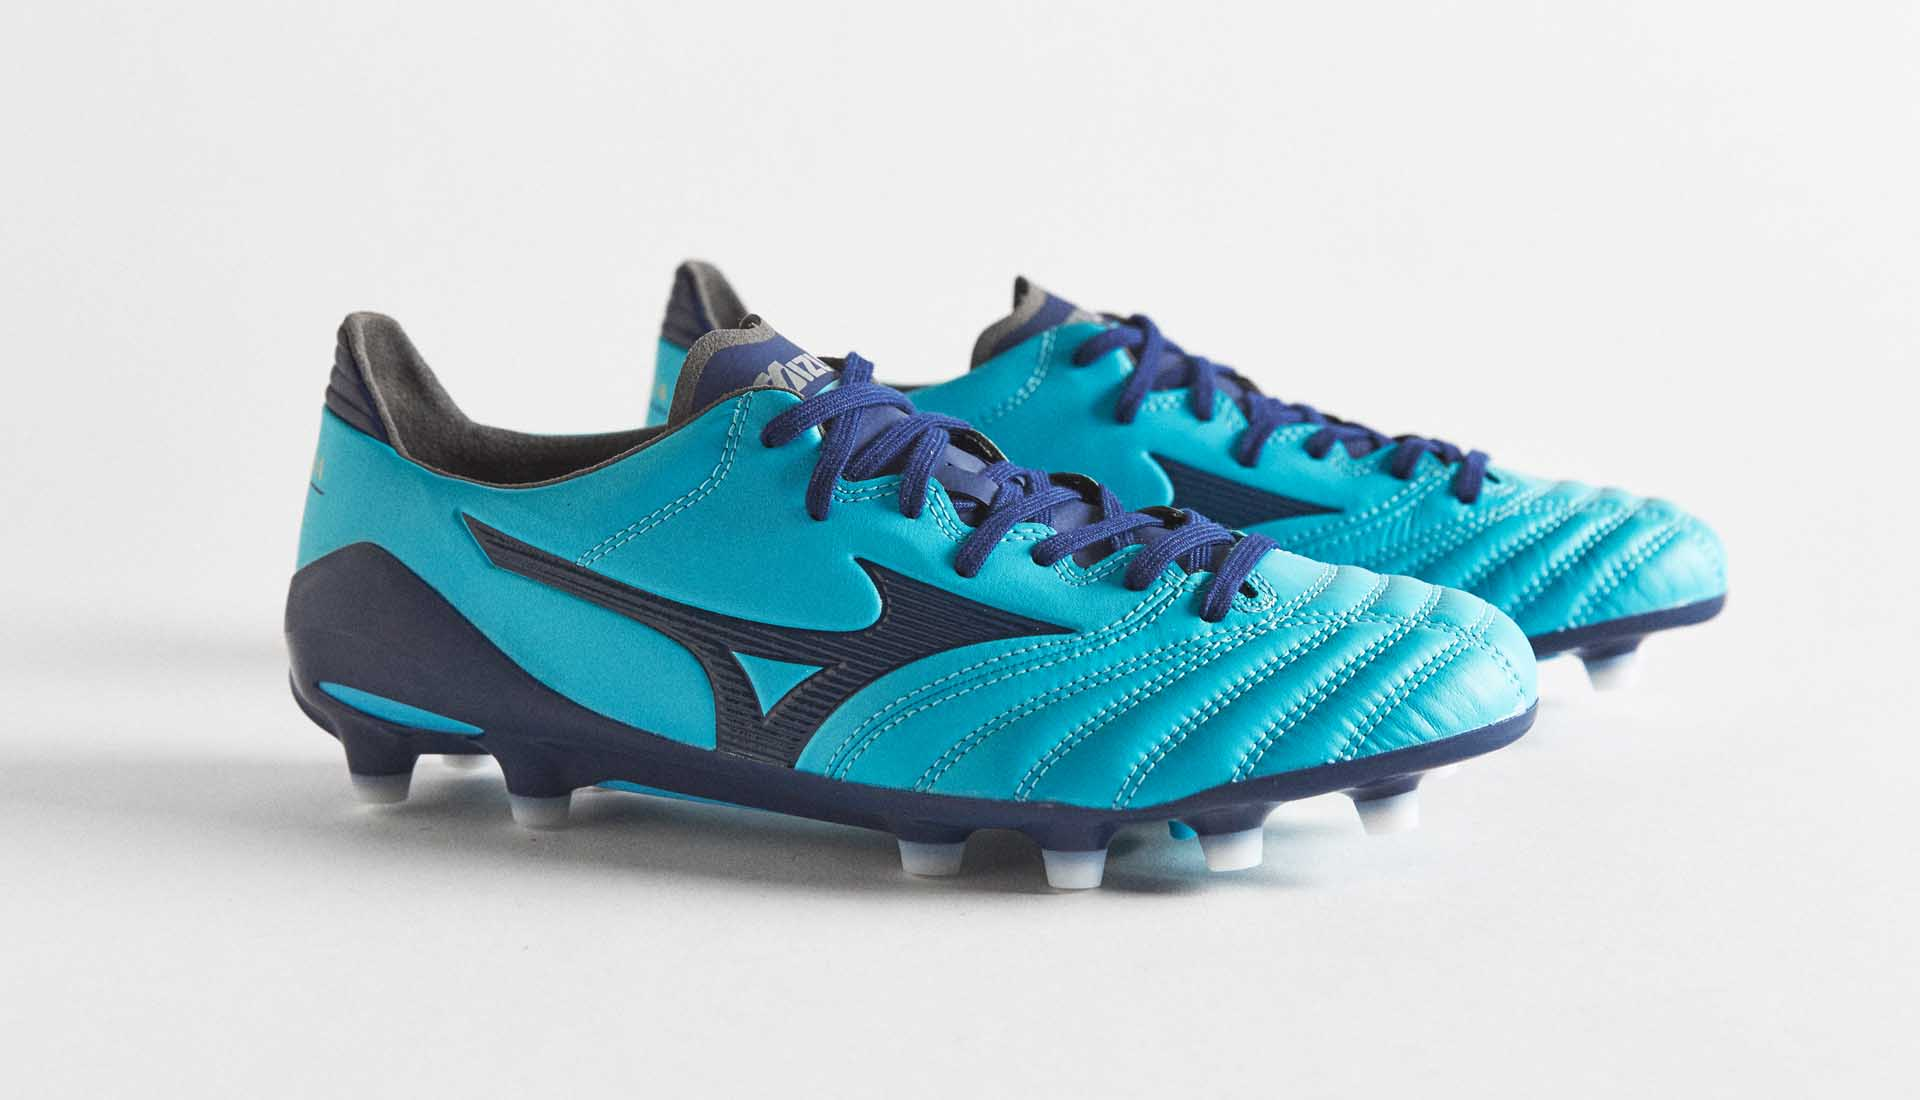 low priced 4d1d0 93543 Mizuno Morelia Neo II